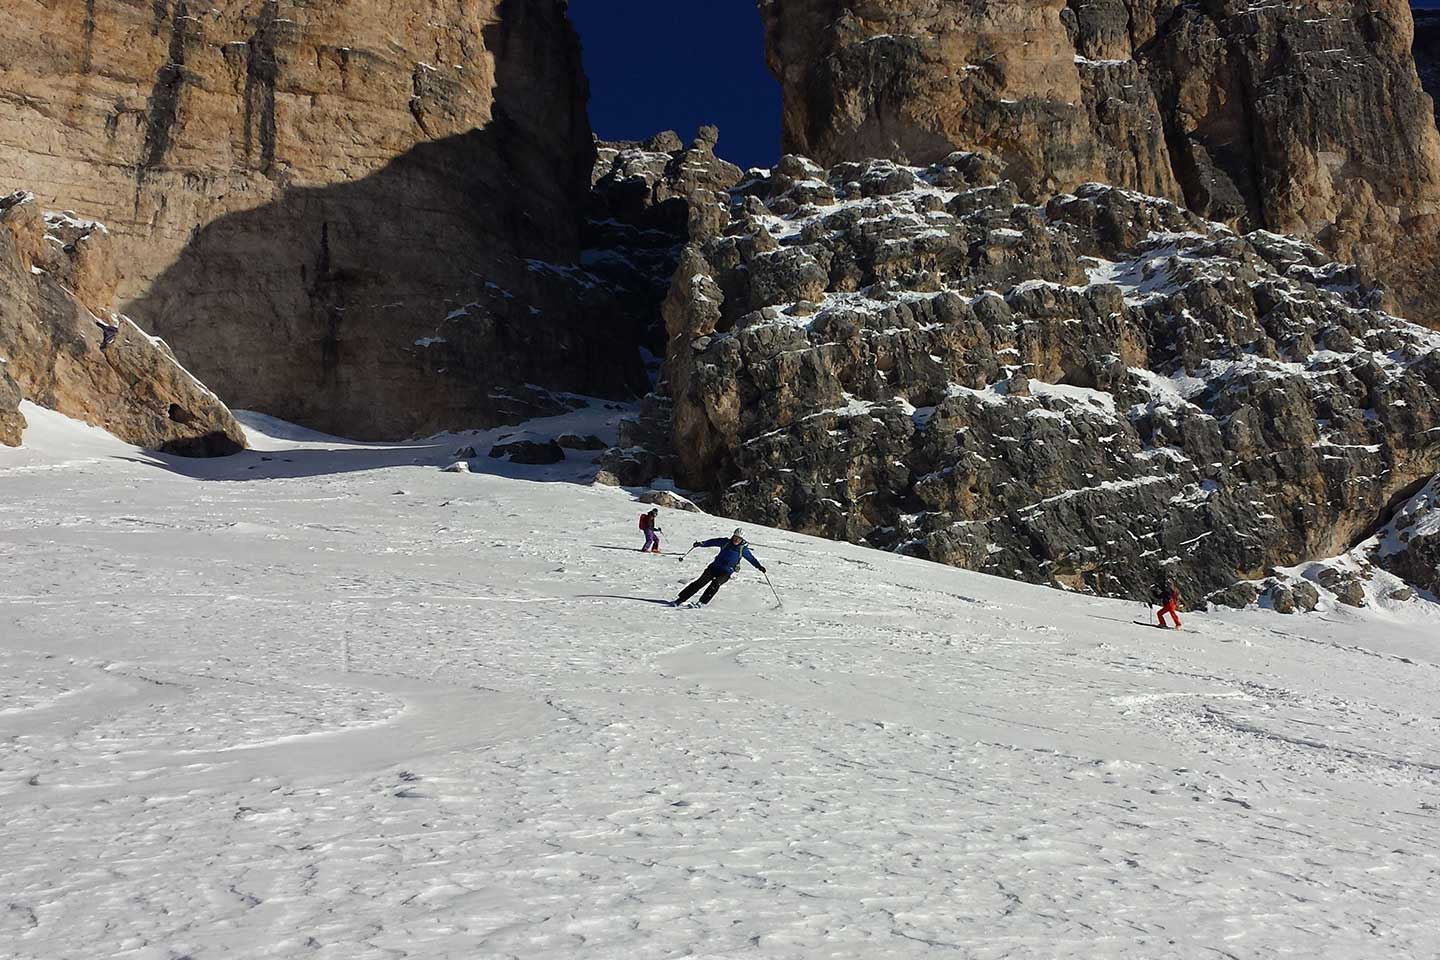 Ski Mountaineering at Lagazuoi to the Three Forcelle